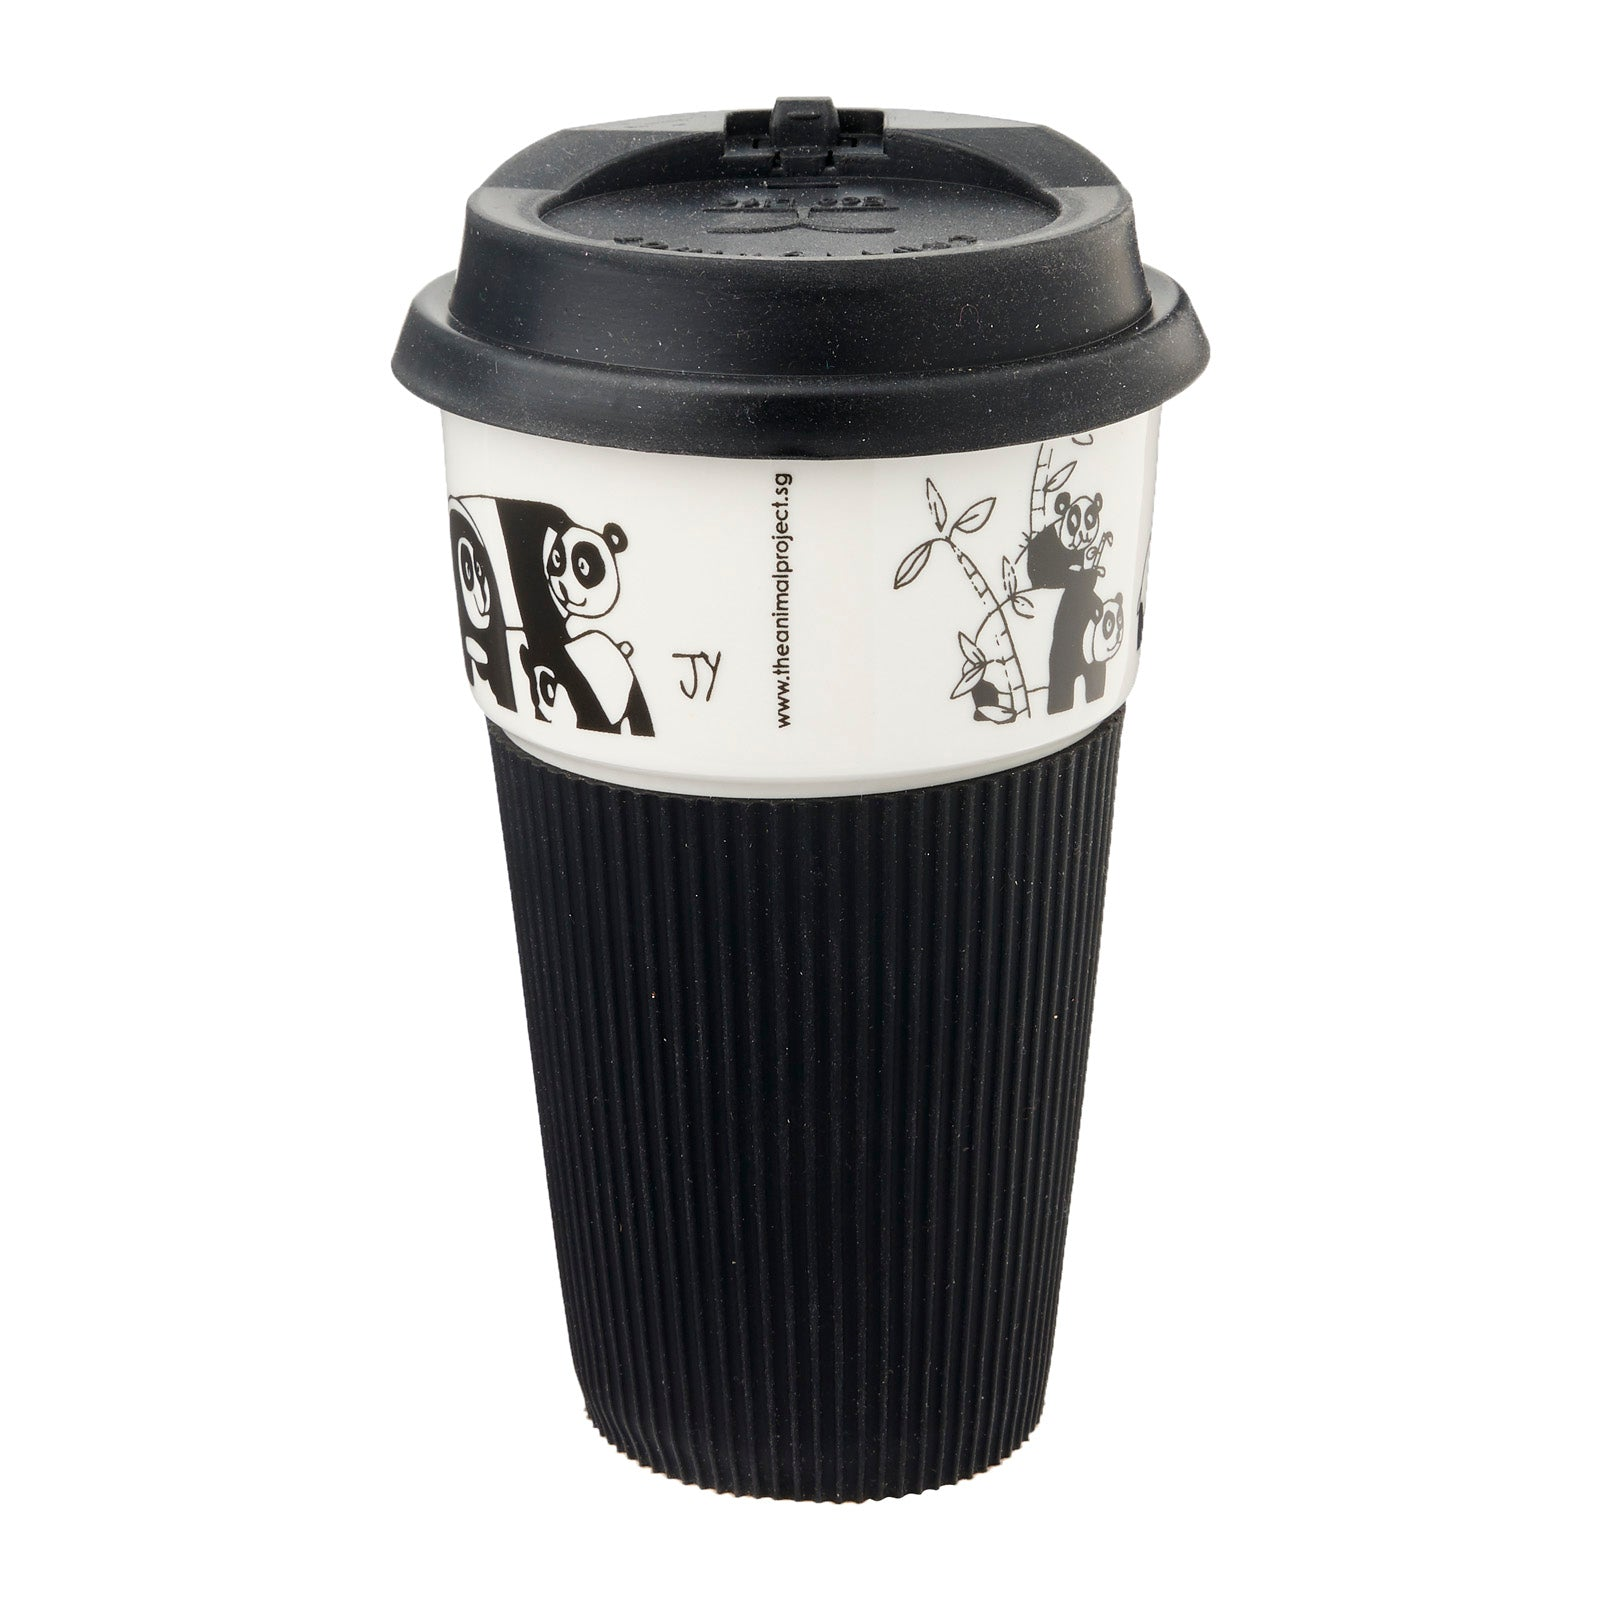 B&W Thermal Mug - Panda